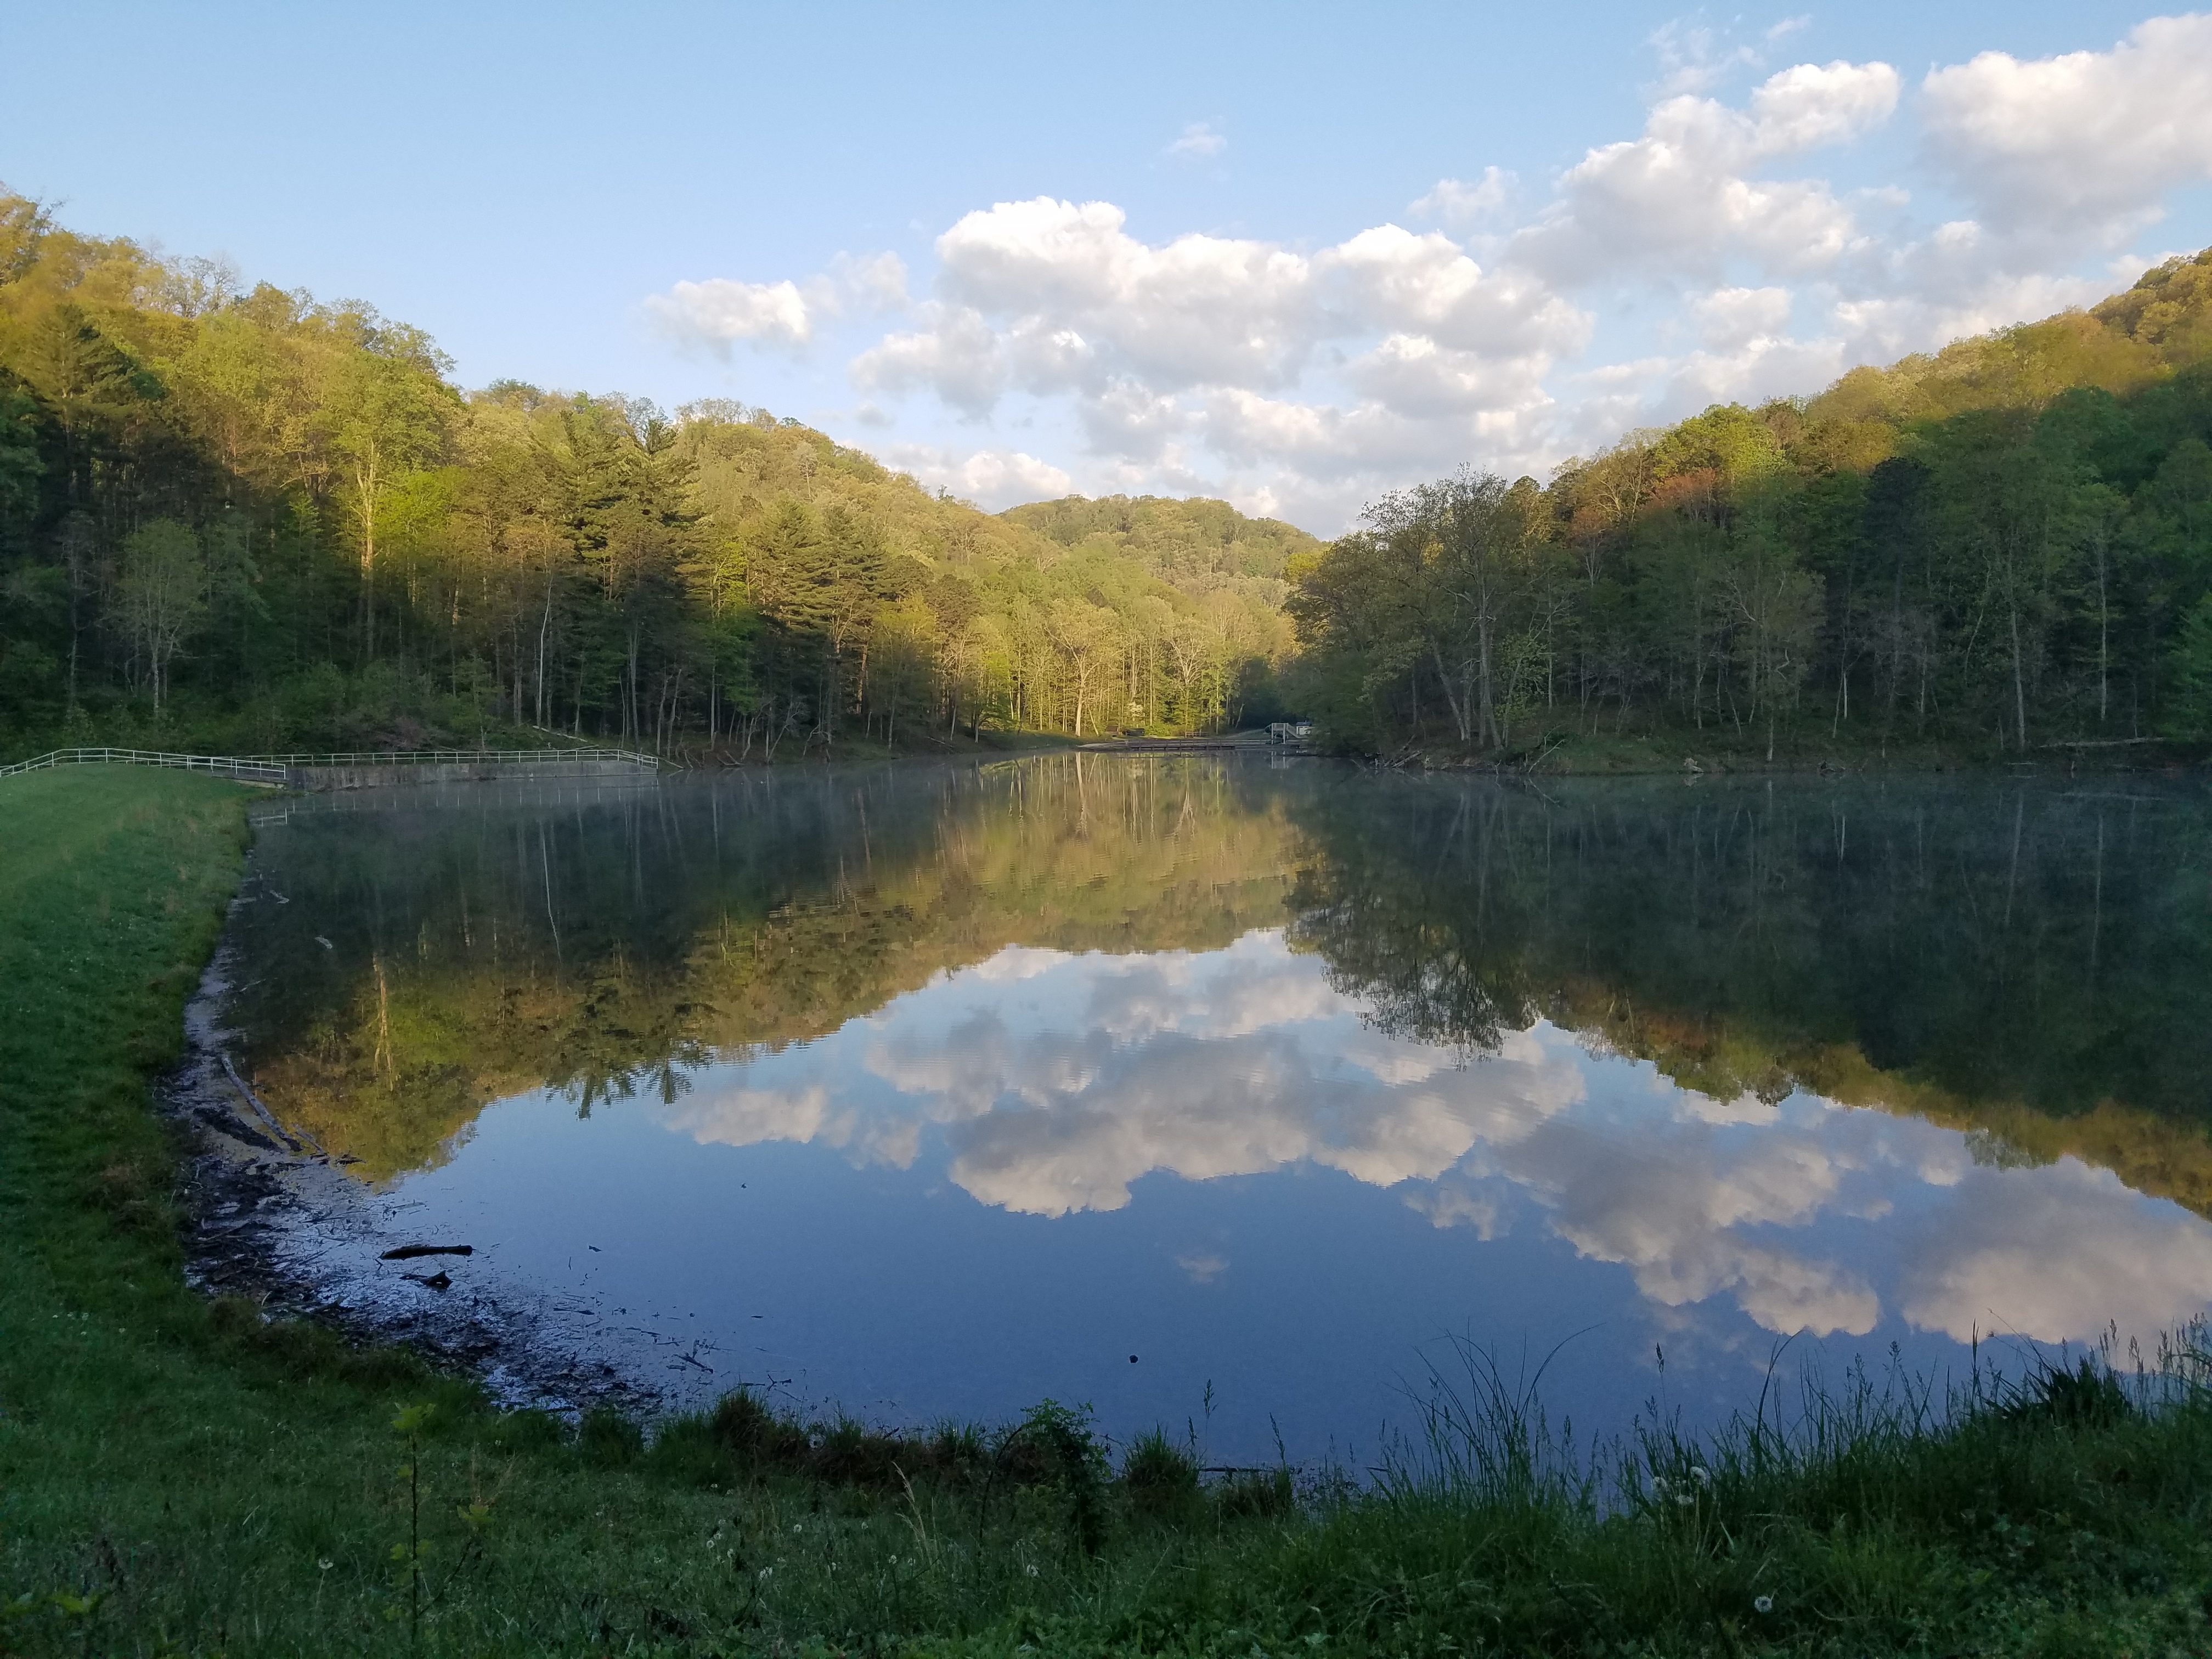 Tar Hollow State Park, Sky, River, Reflection, Tree, HQ Photo